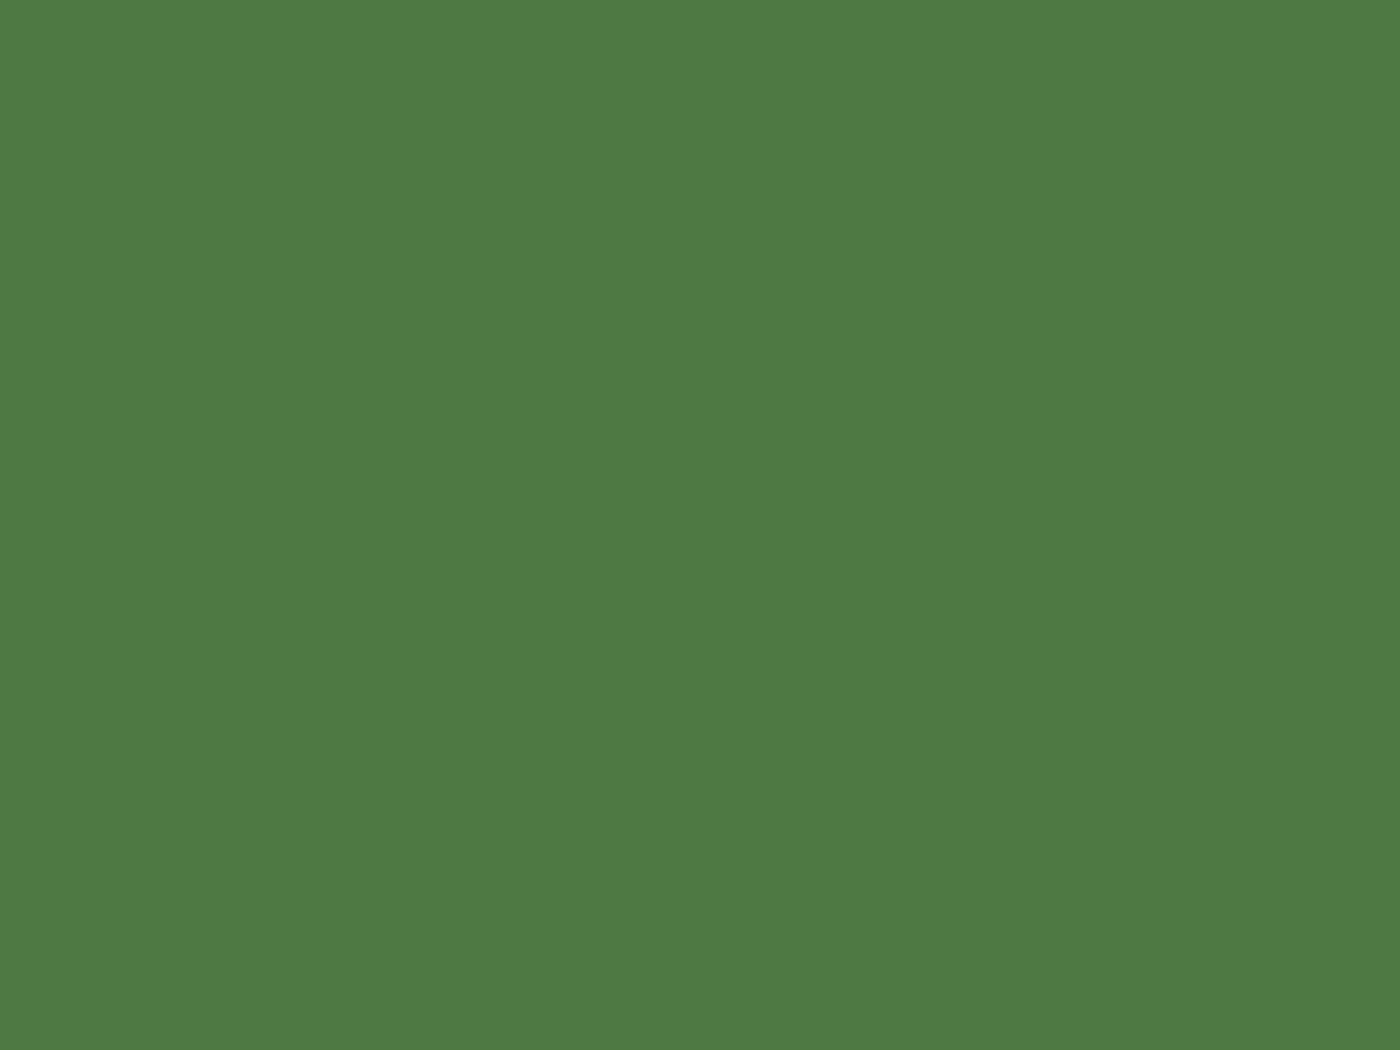 1400x1050 Fern Green Solid Color Background